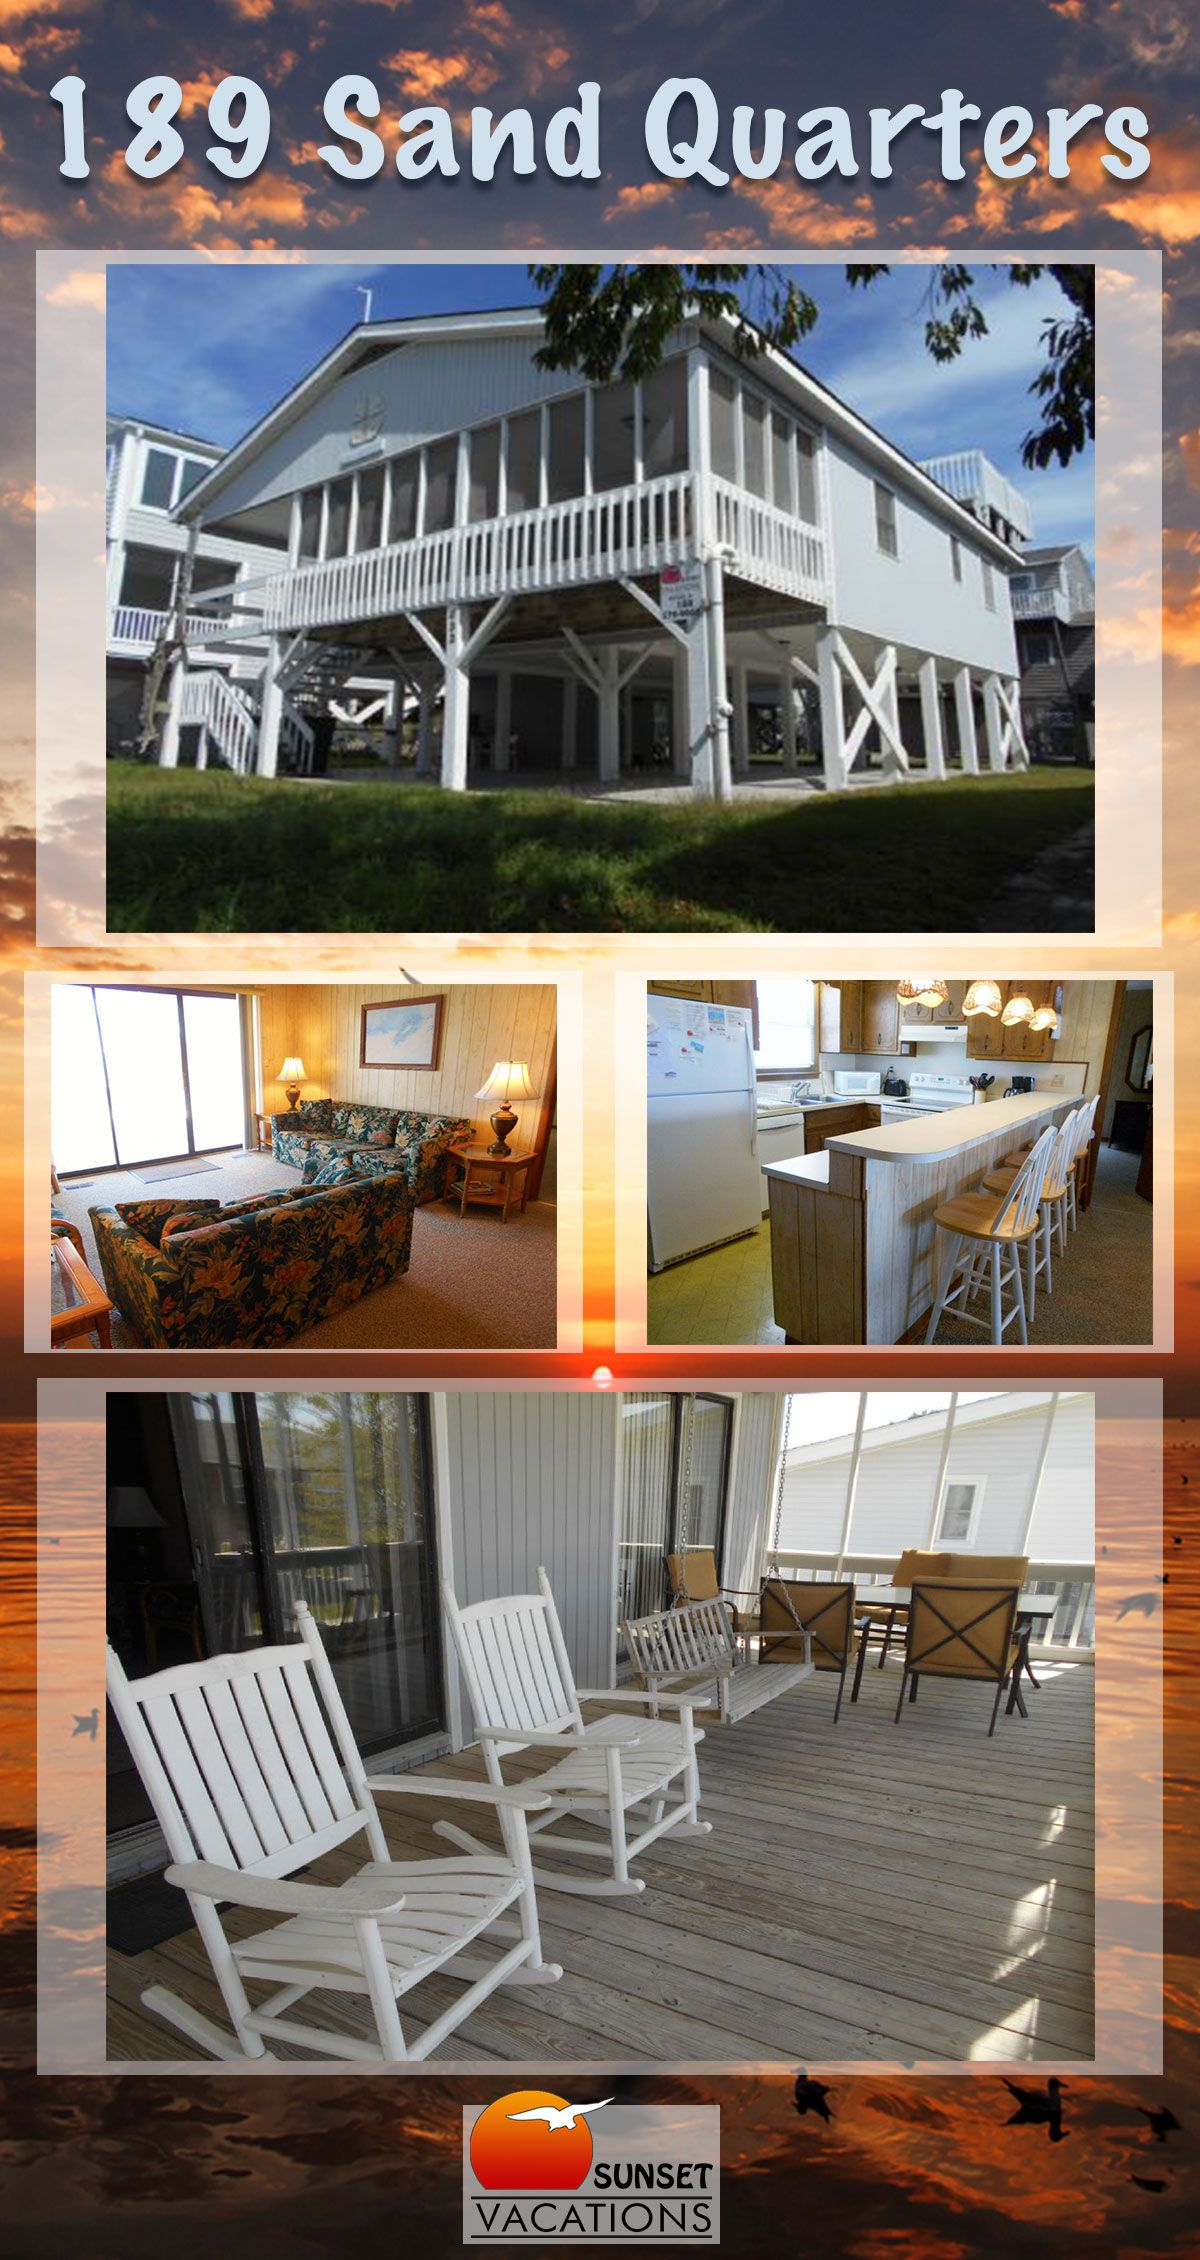 Sand Quarters Is A Great Mid Island Home With 4 Bedrooms Book Your Summer 2018 Vacation Today Sunset Beach Nc Awaits Sunset Vacations Beach Sunset Vacation